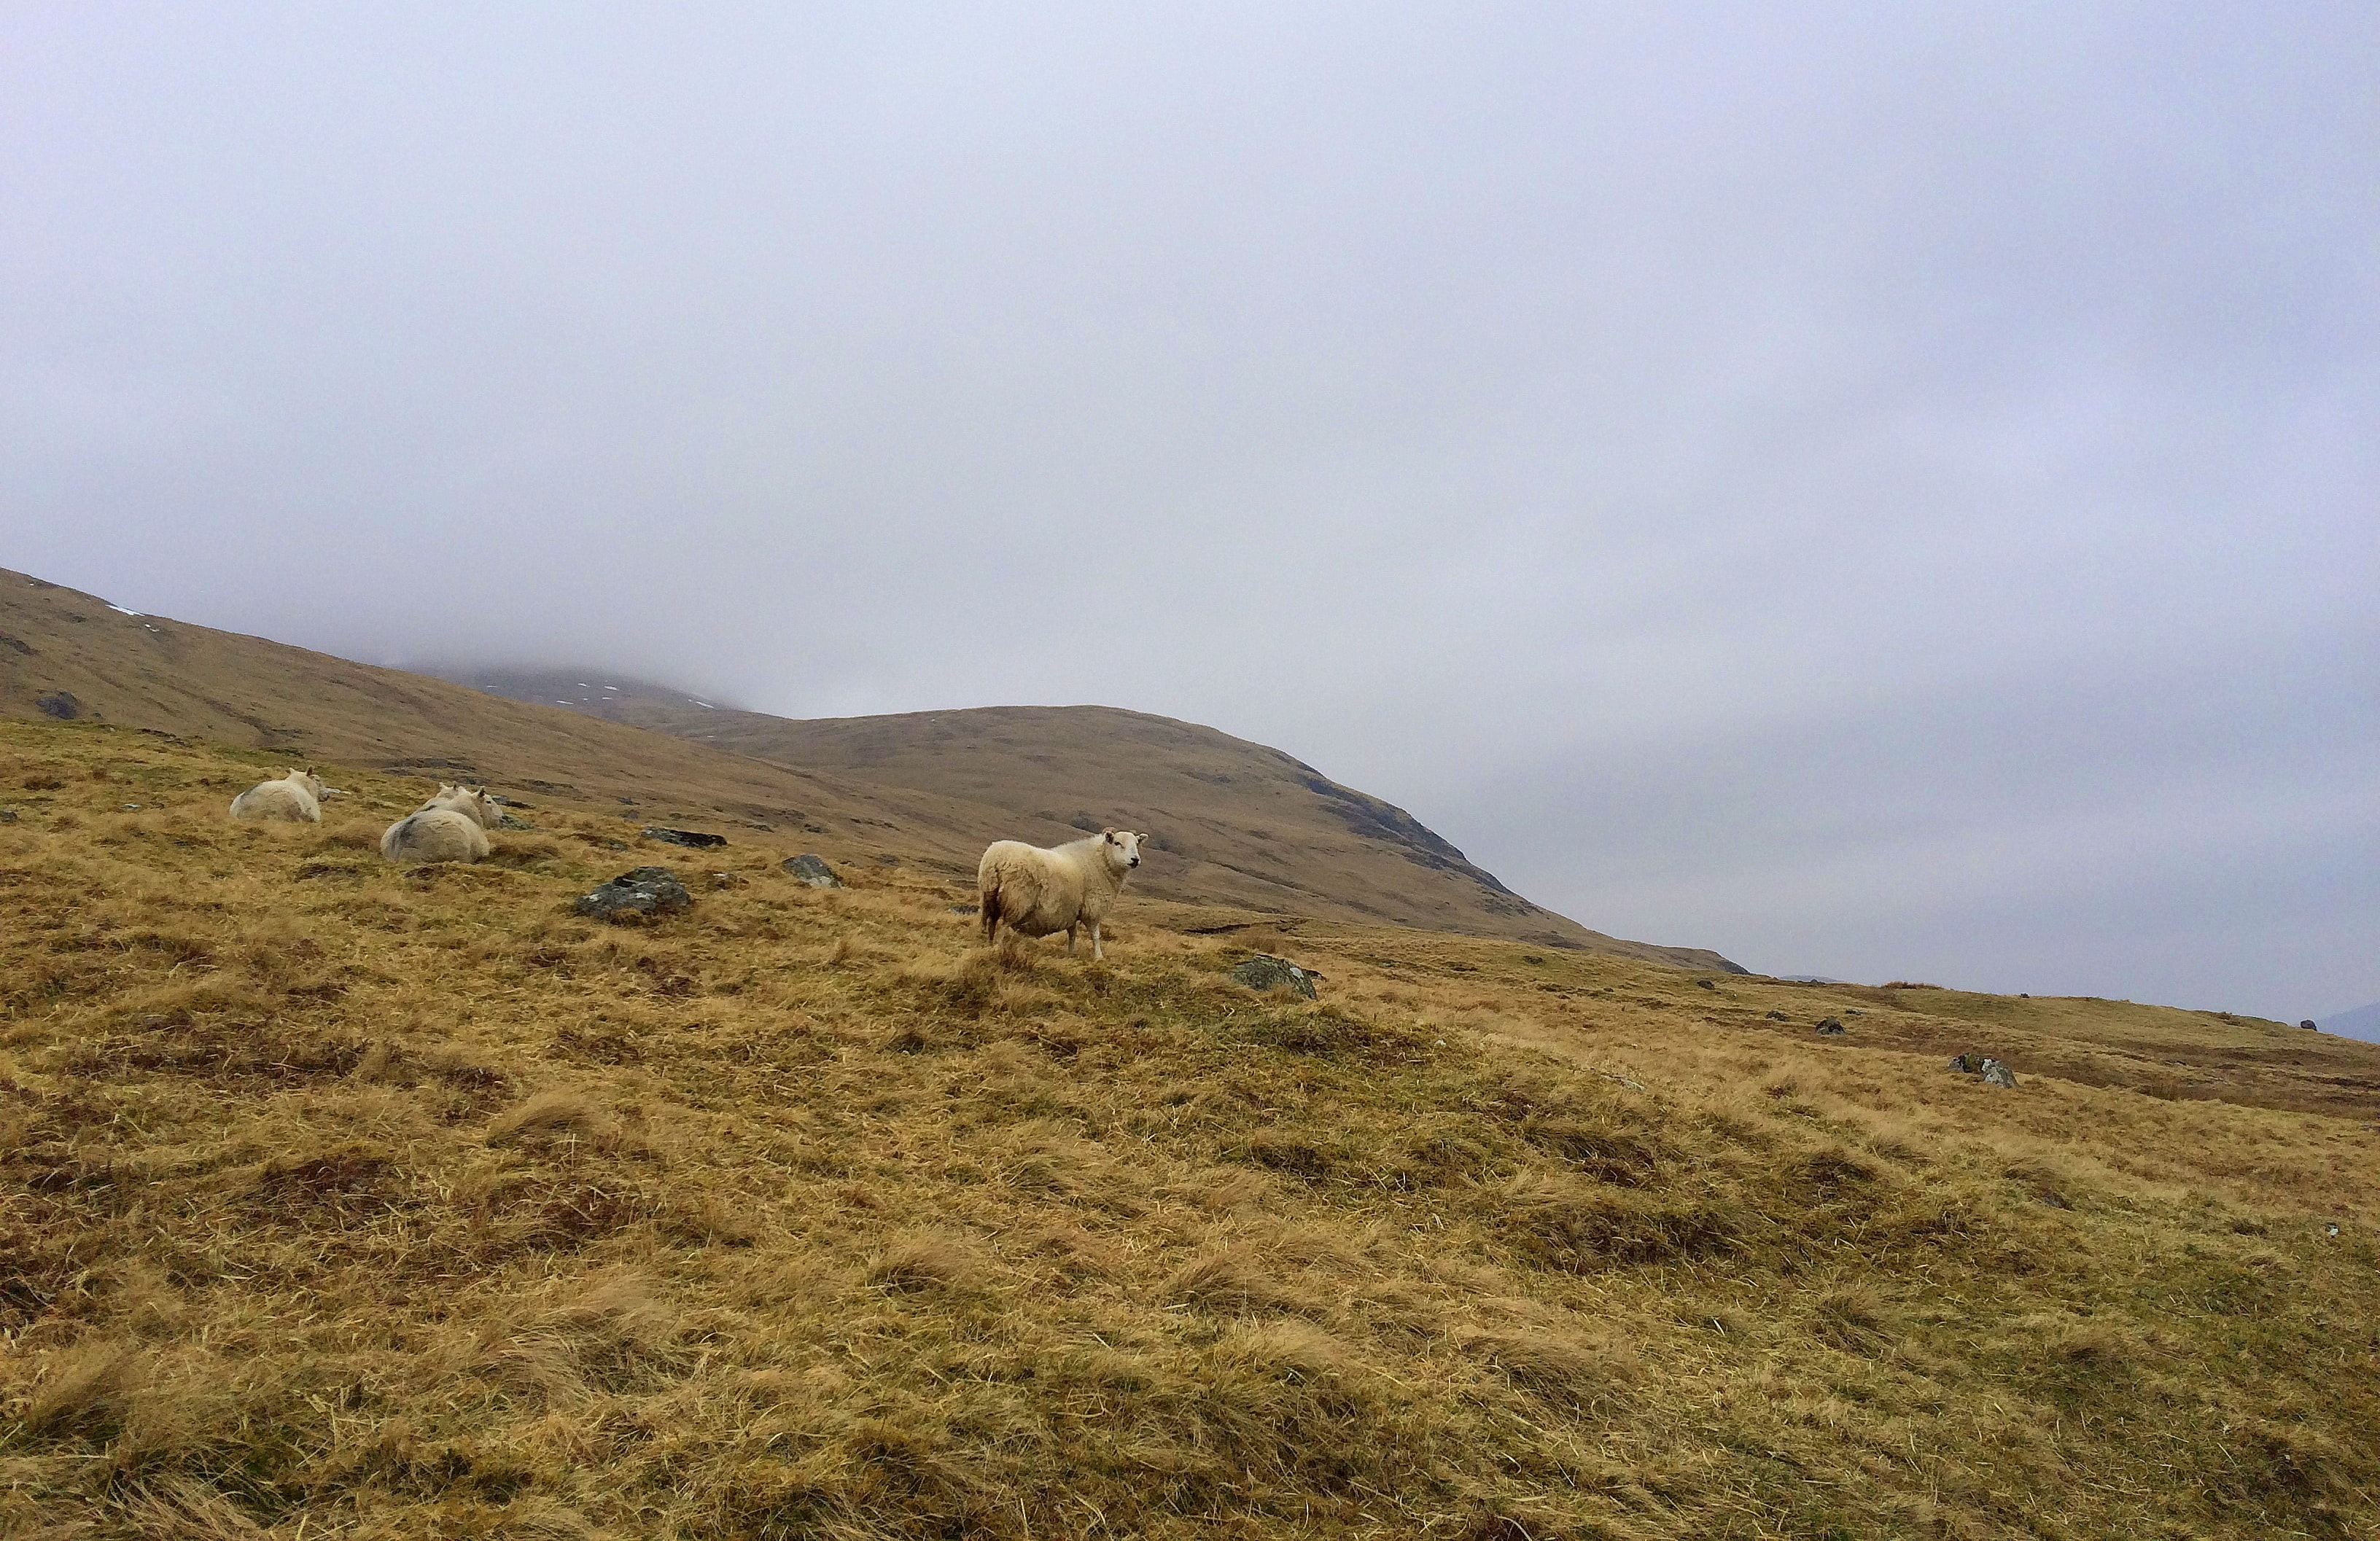 Sheep graze in a grassy hillside on a foggy day